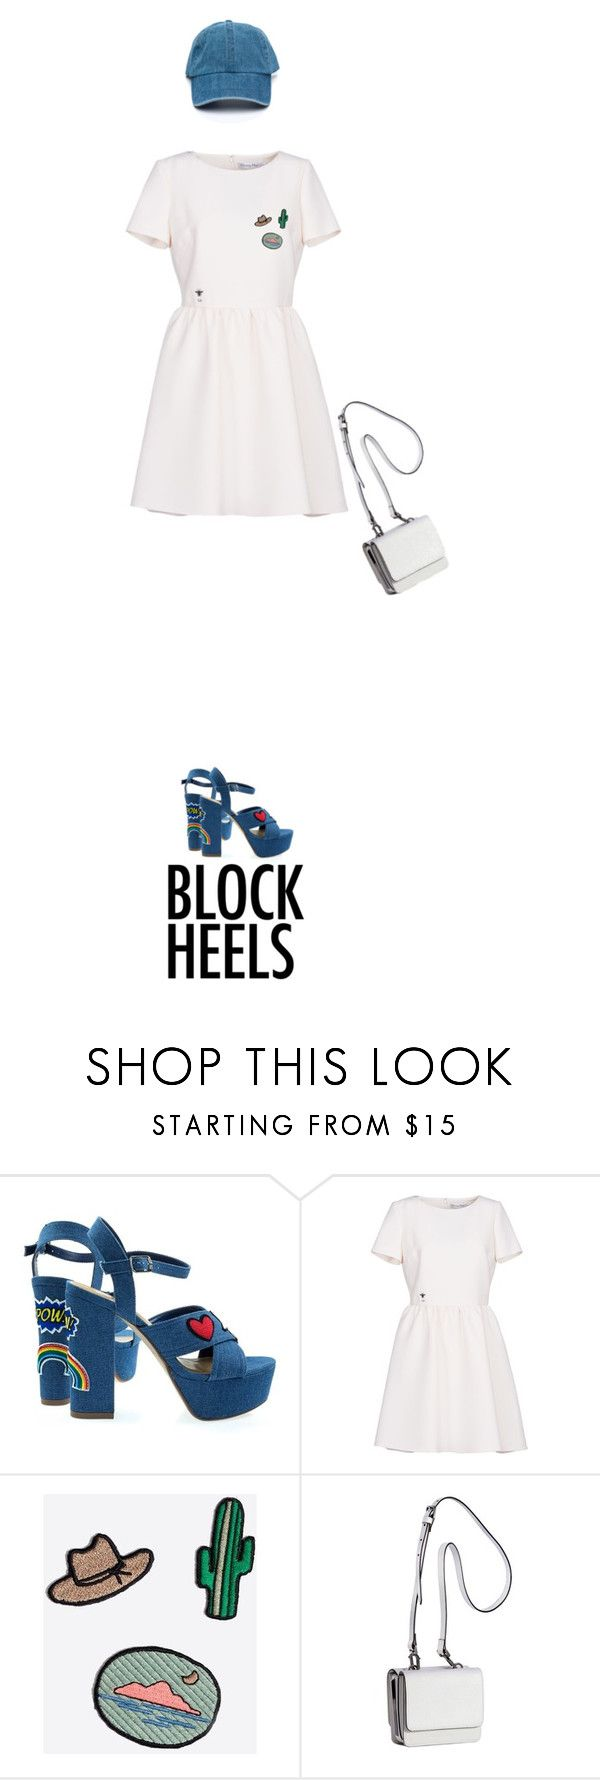 """i'm blocking you on twitter"" by alice-cav ❤ liked on Polyvore featuring Christian Dior, Madewell, Kendall + Kylie, white, Blue and blockheels"